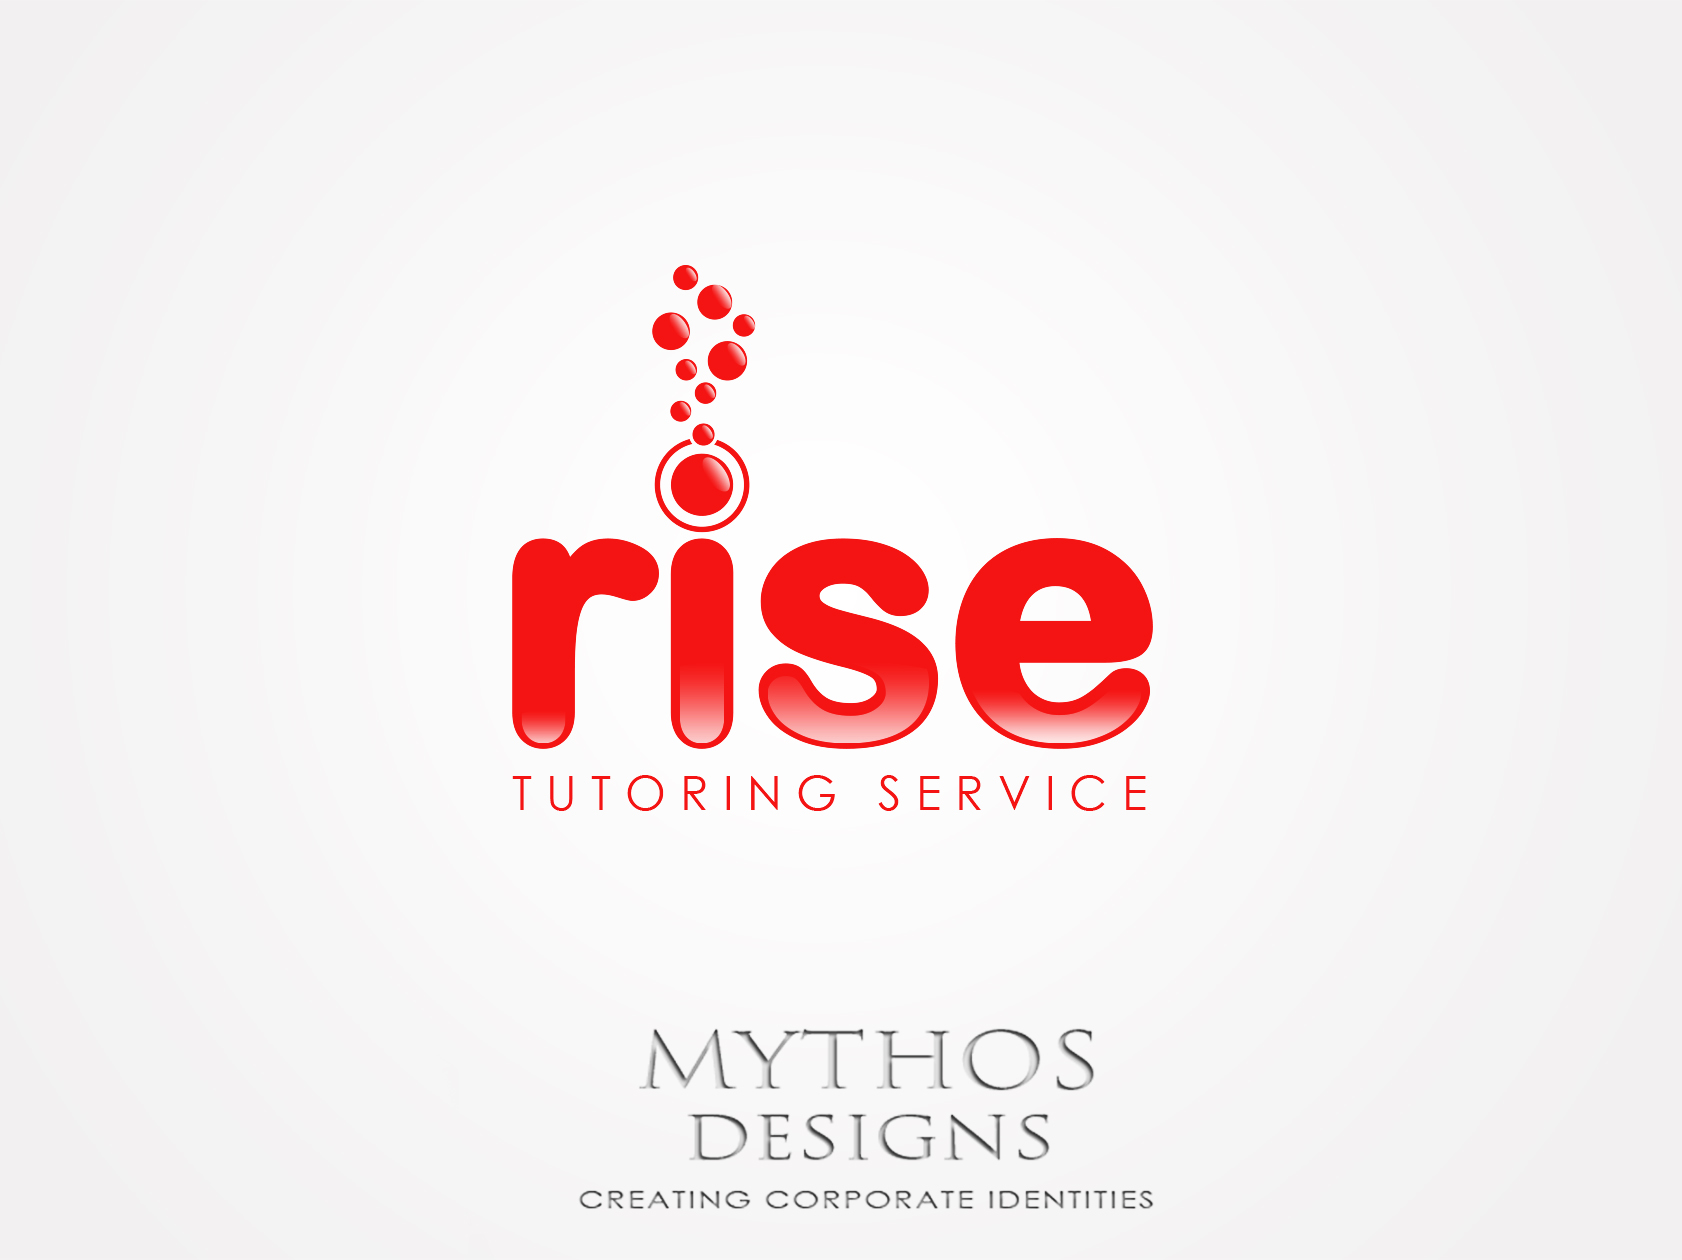 Logo Design by Mythos Designs - Entry No. 248 in the Logo Design Contest Imaginative Logo Design for Rise Tutoring Service.